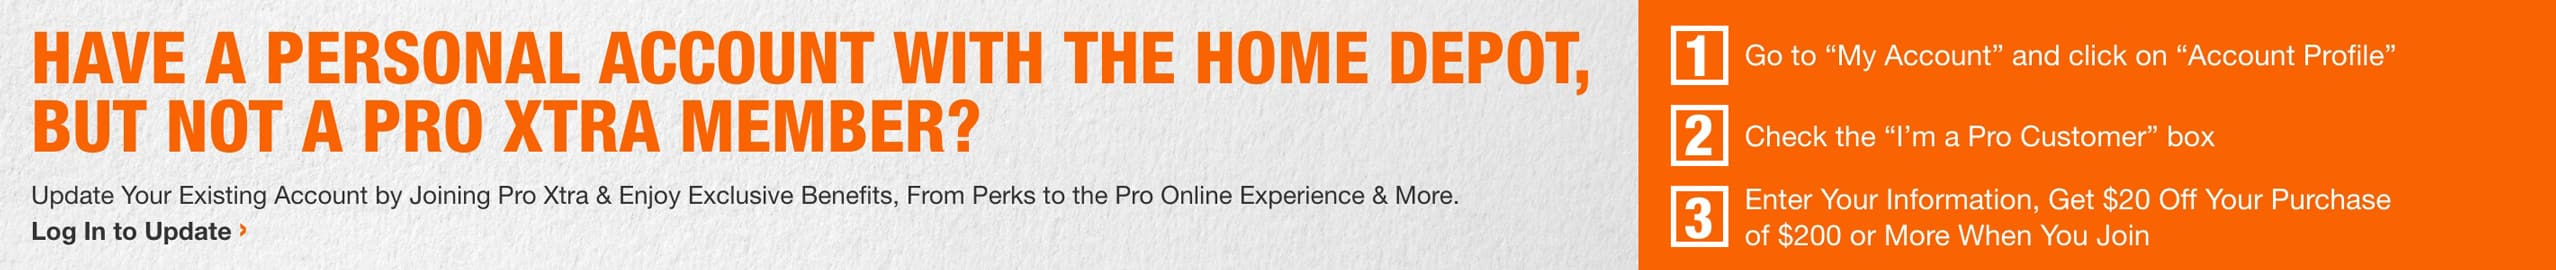 Have a personal account with The Home Depot, but not a Pro Xtra member?